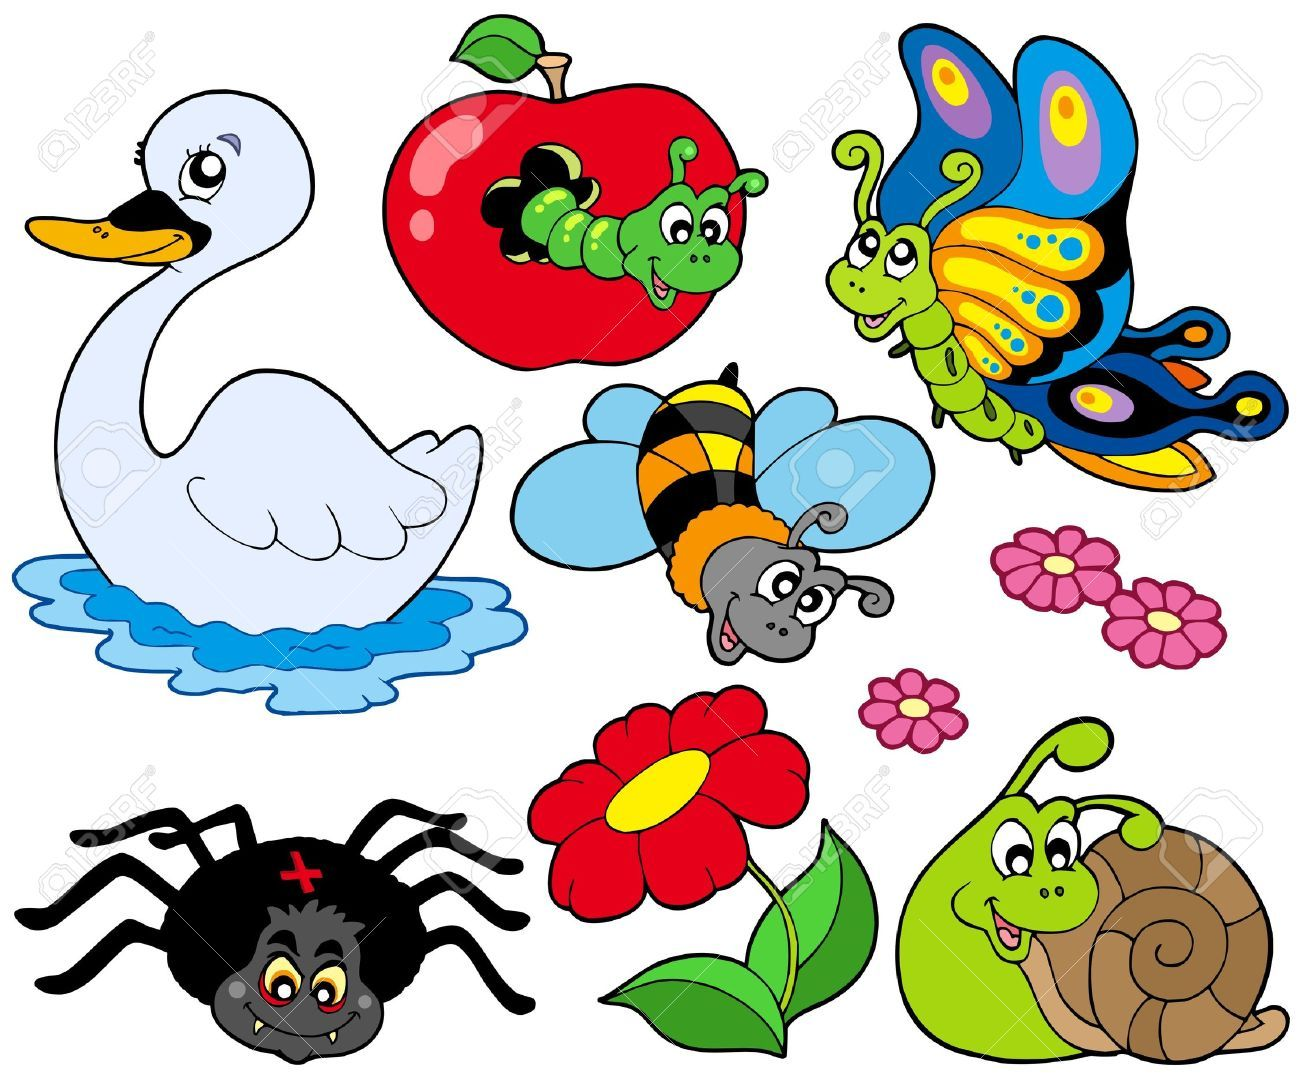 Small animals clipart picture black and white download Small animals clipart 7 » Clipart Portal picture black and white download